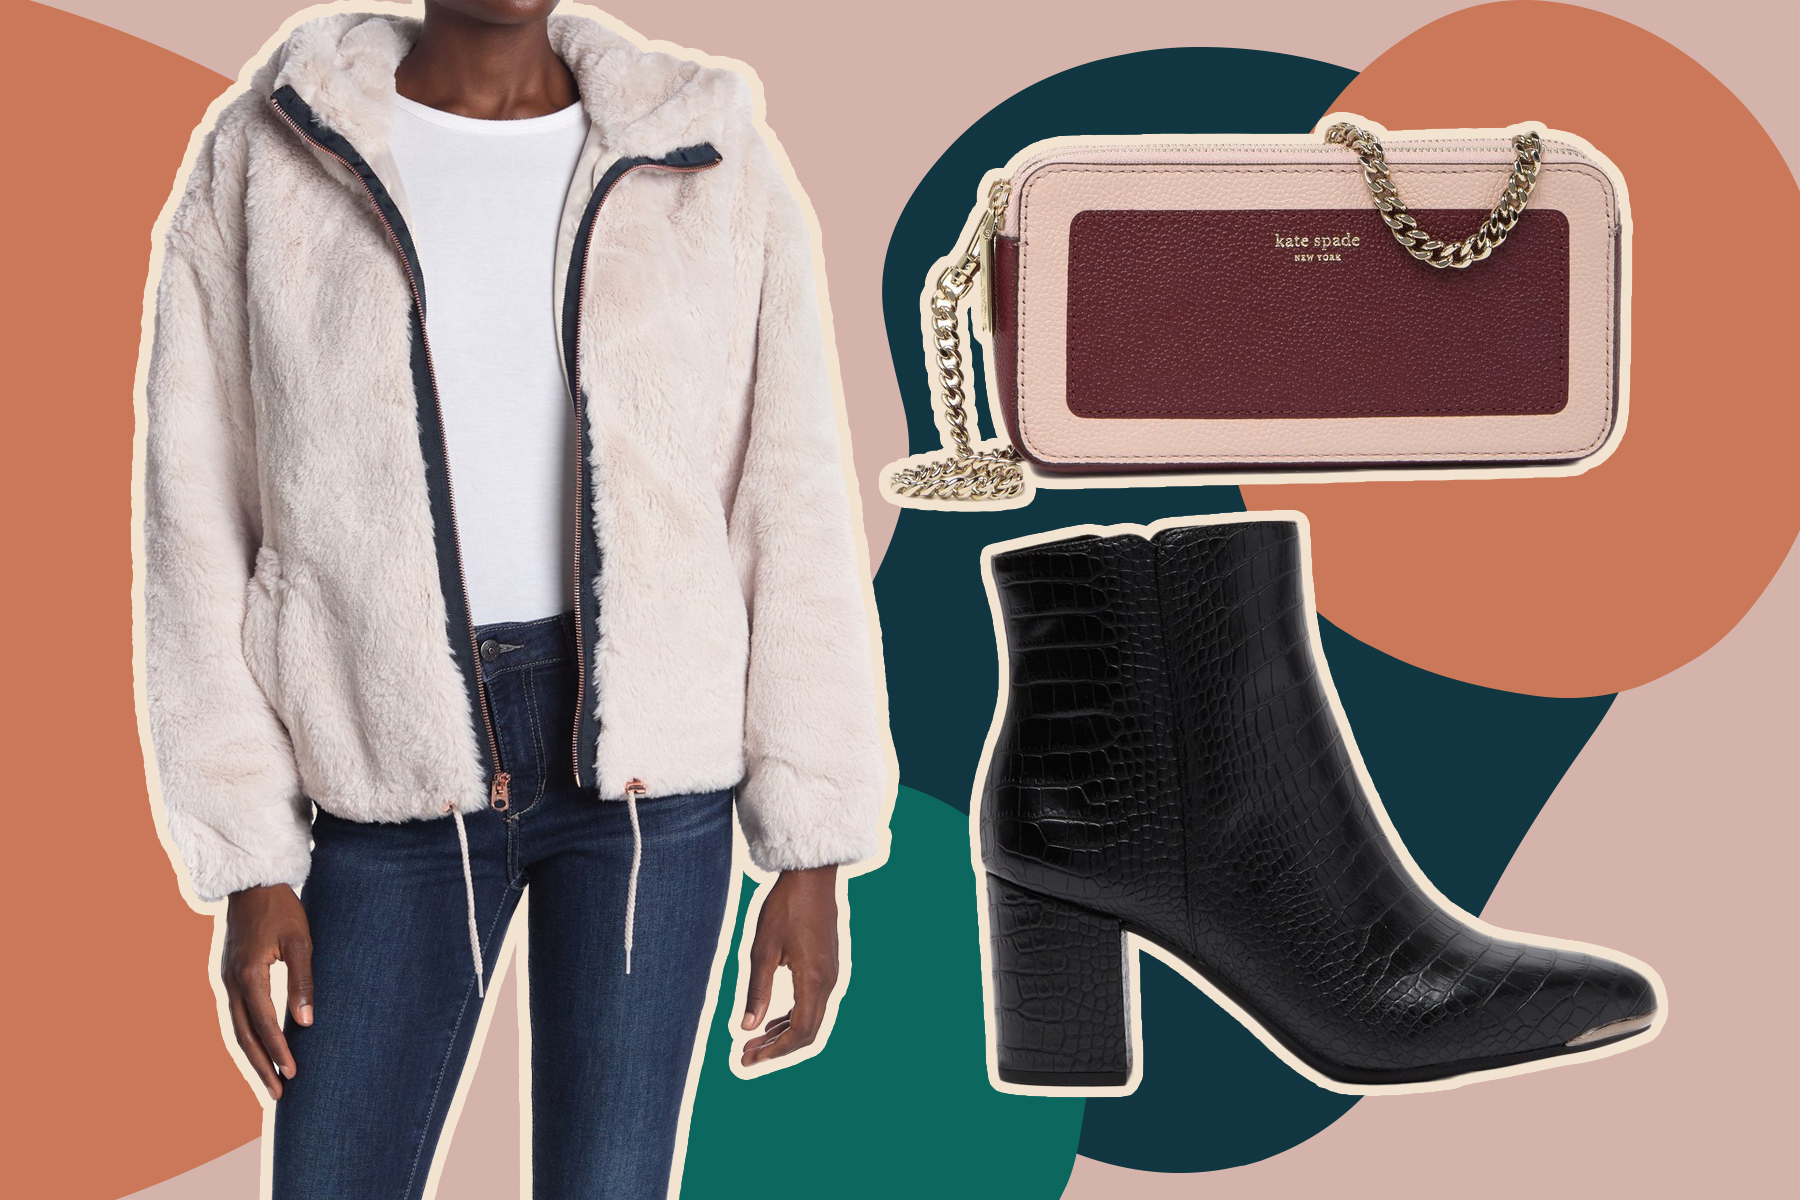 nordstrom rack sale discounted fall